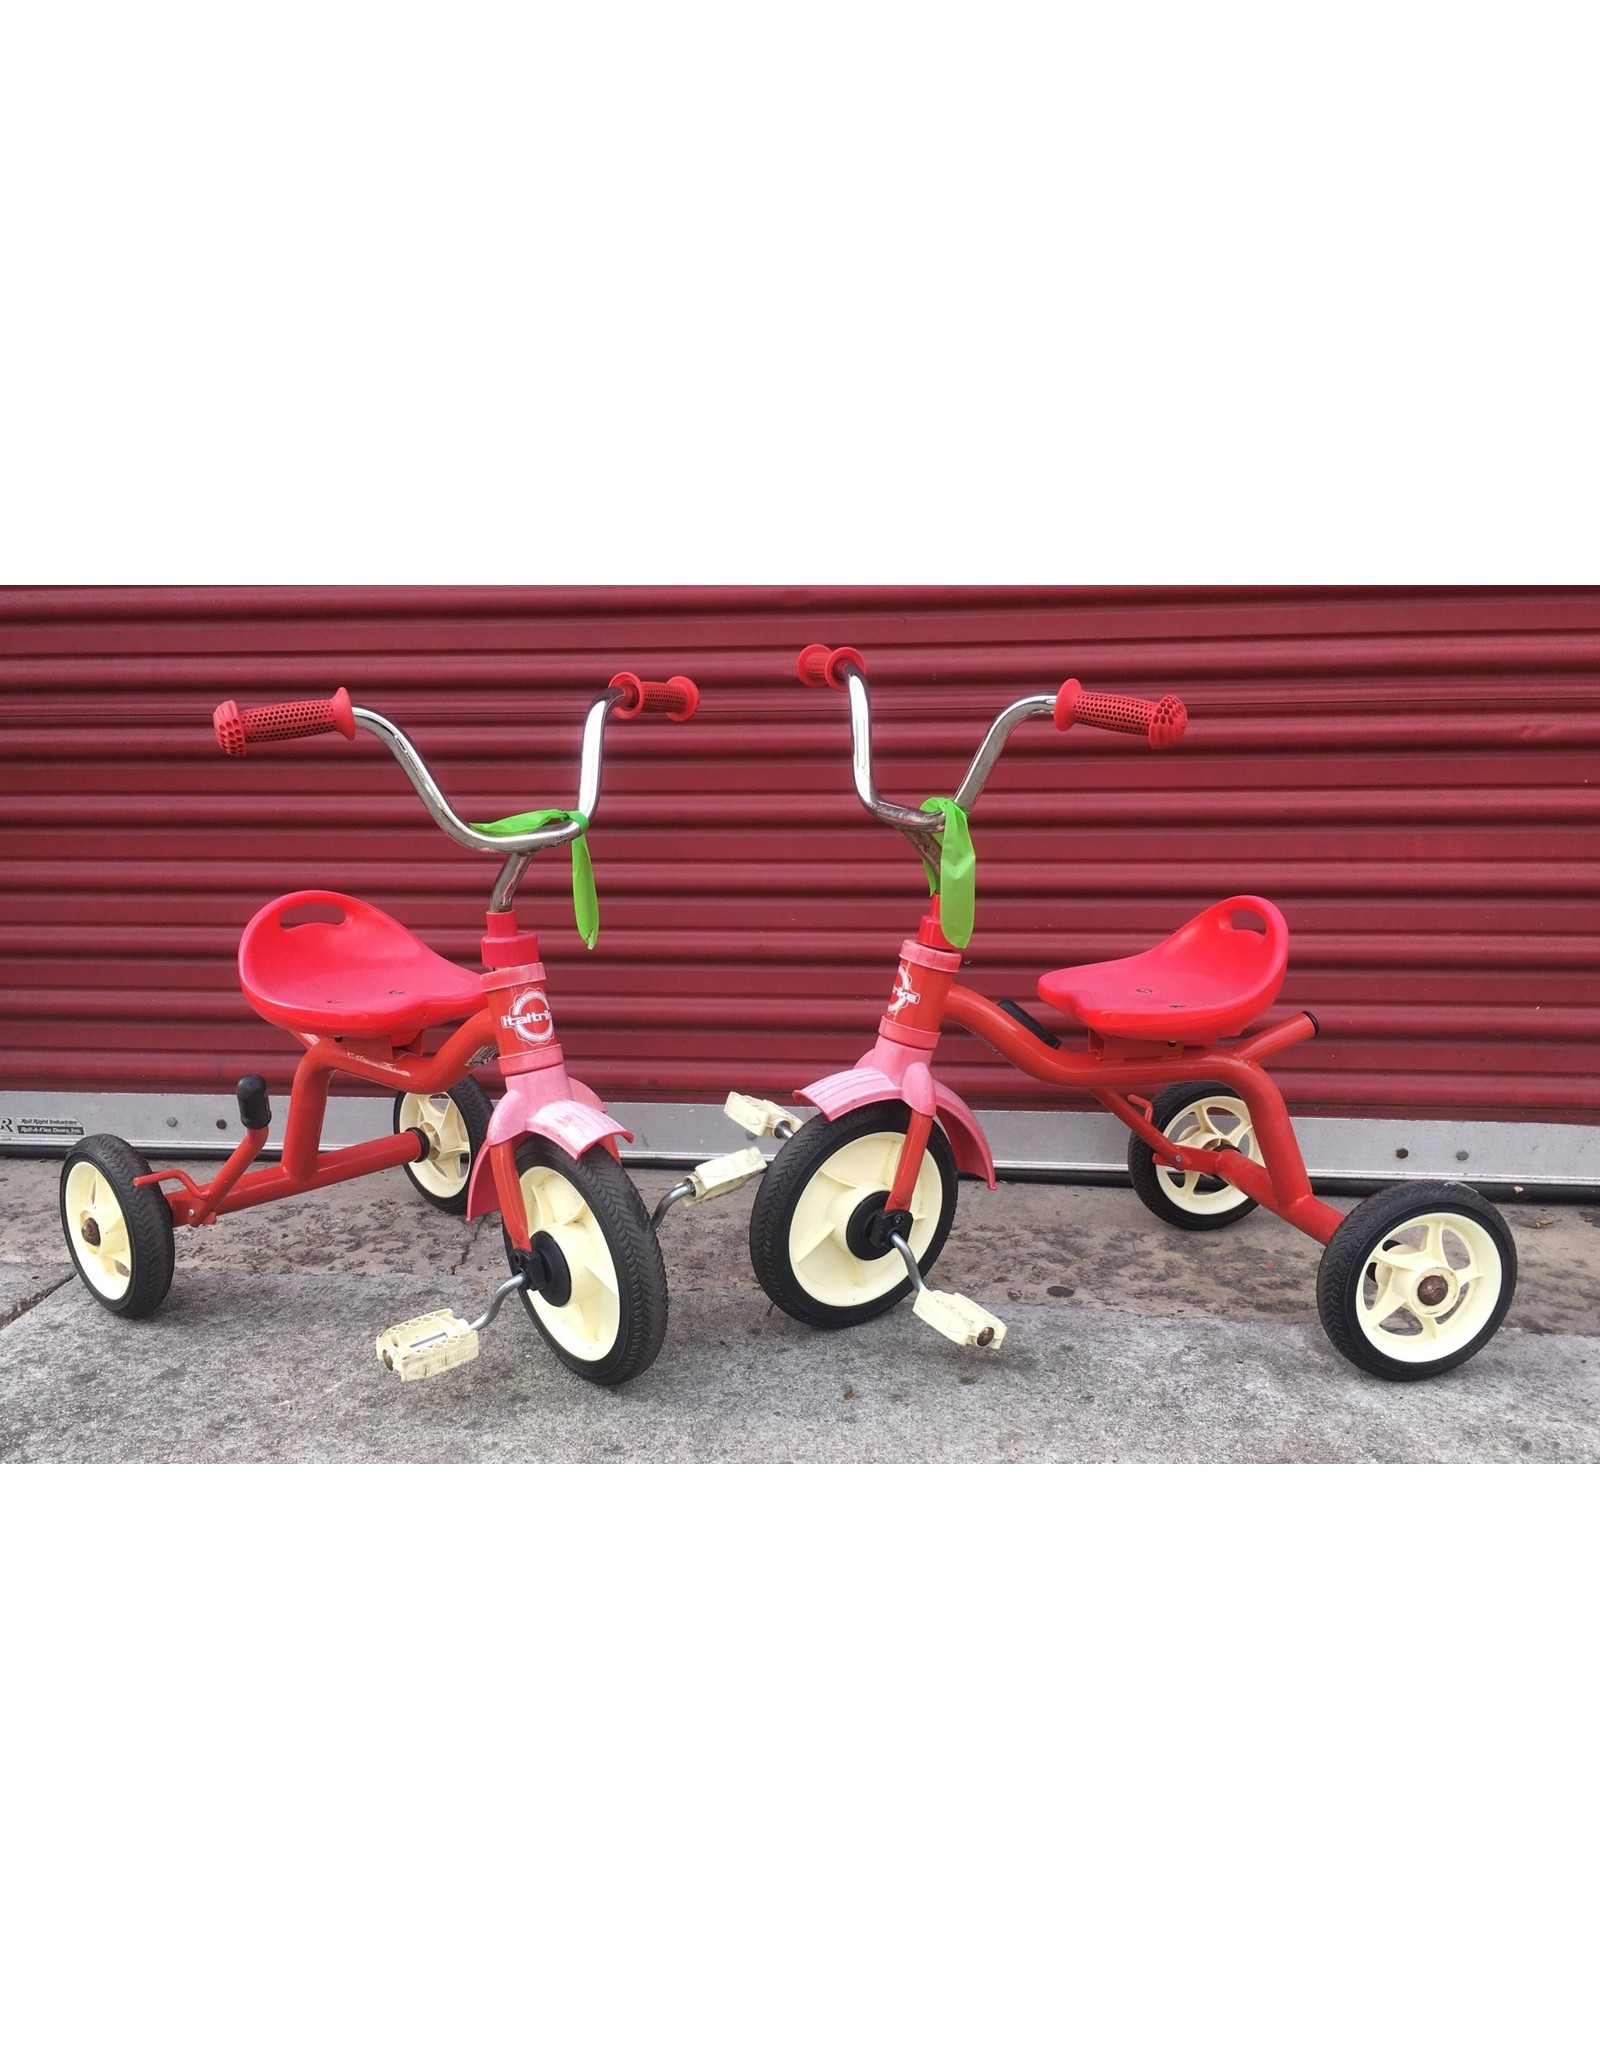 ItalTrike ItalTrike Tricycle, Red